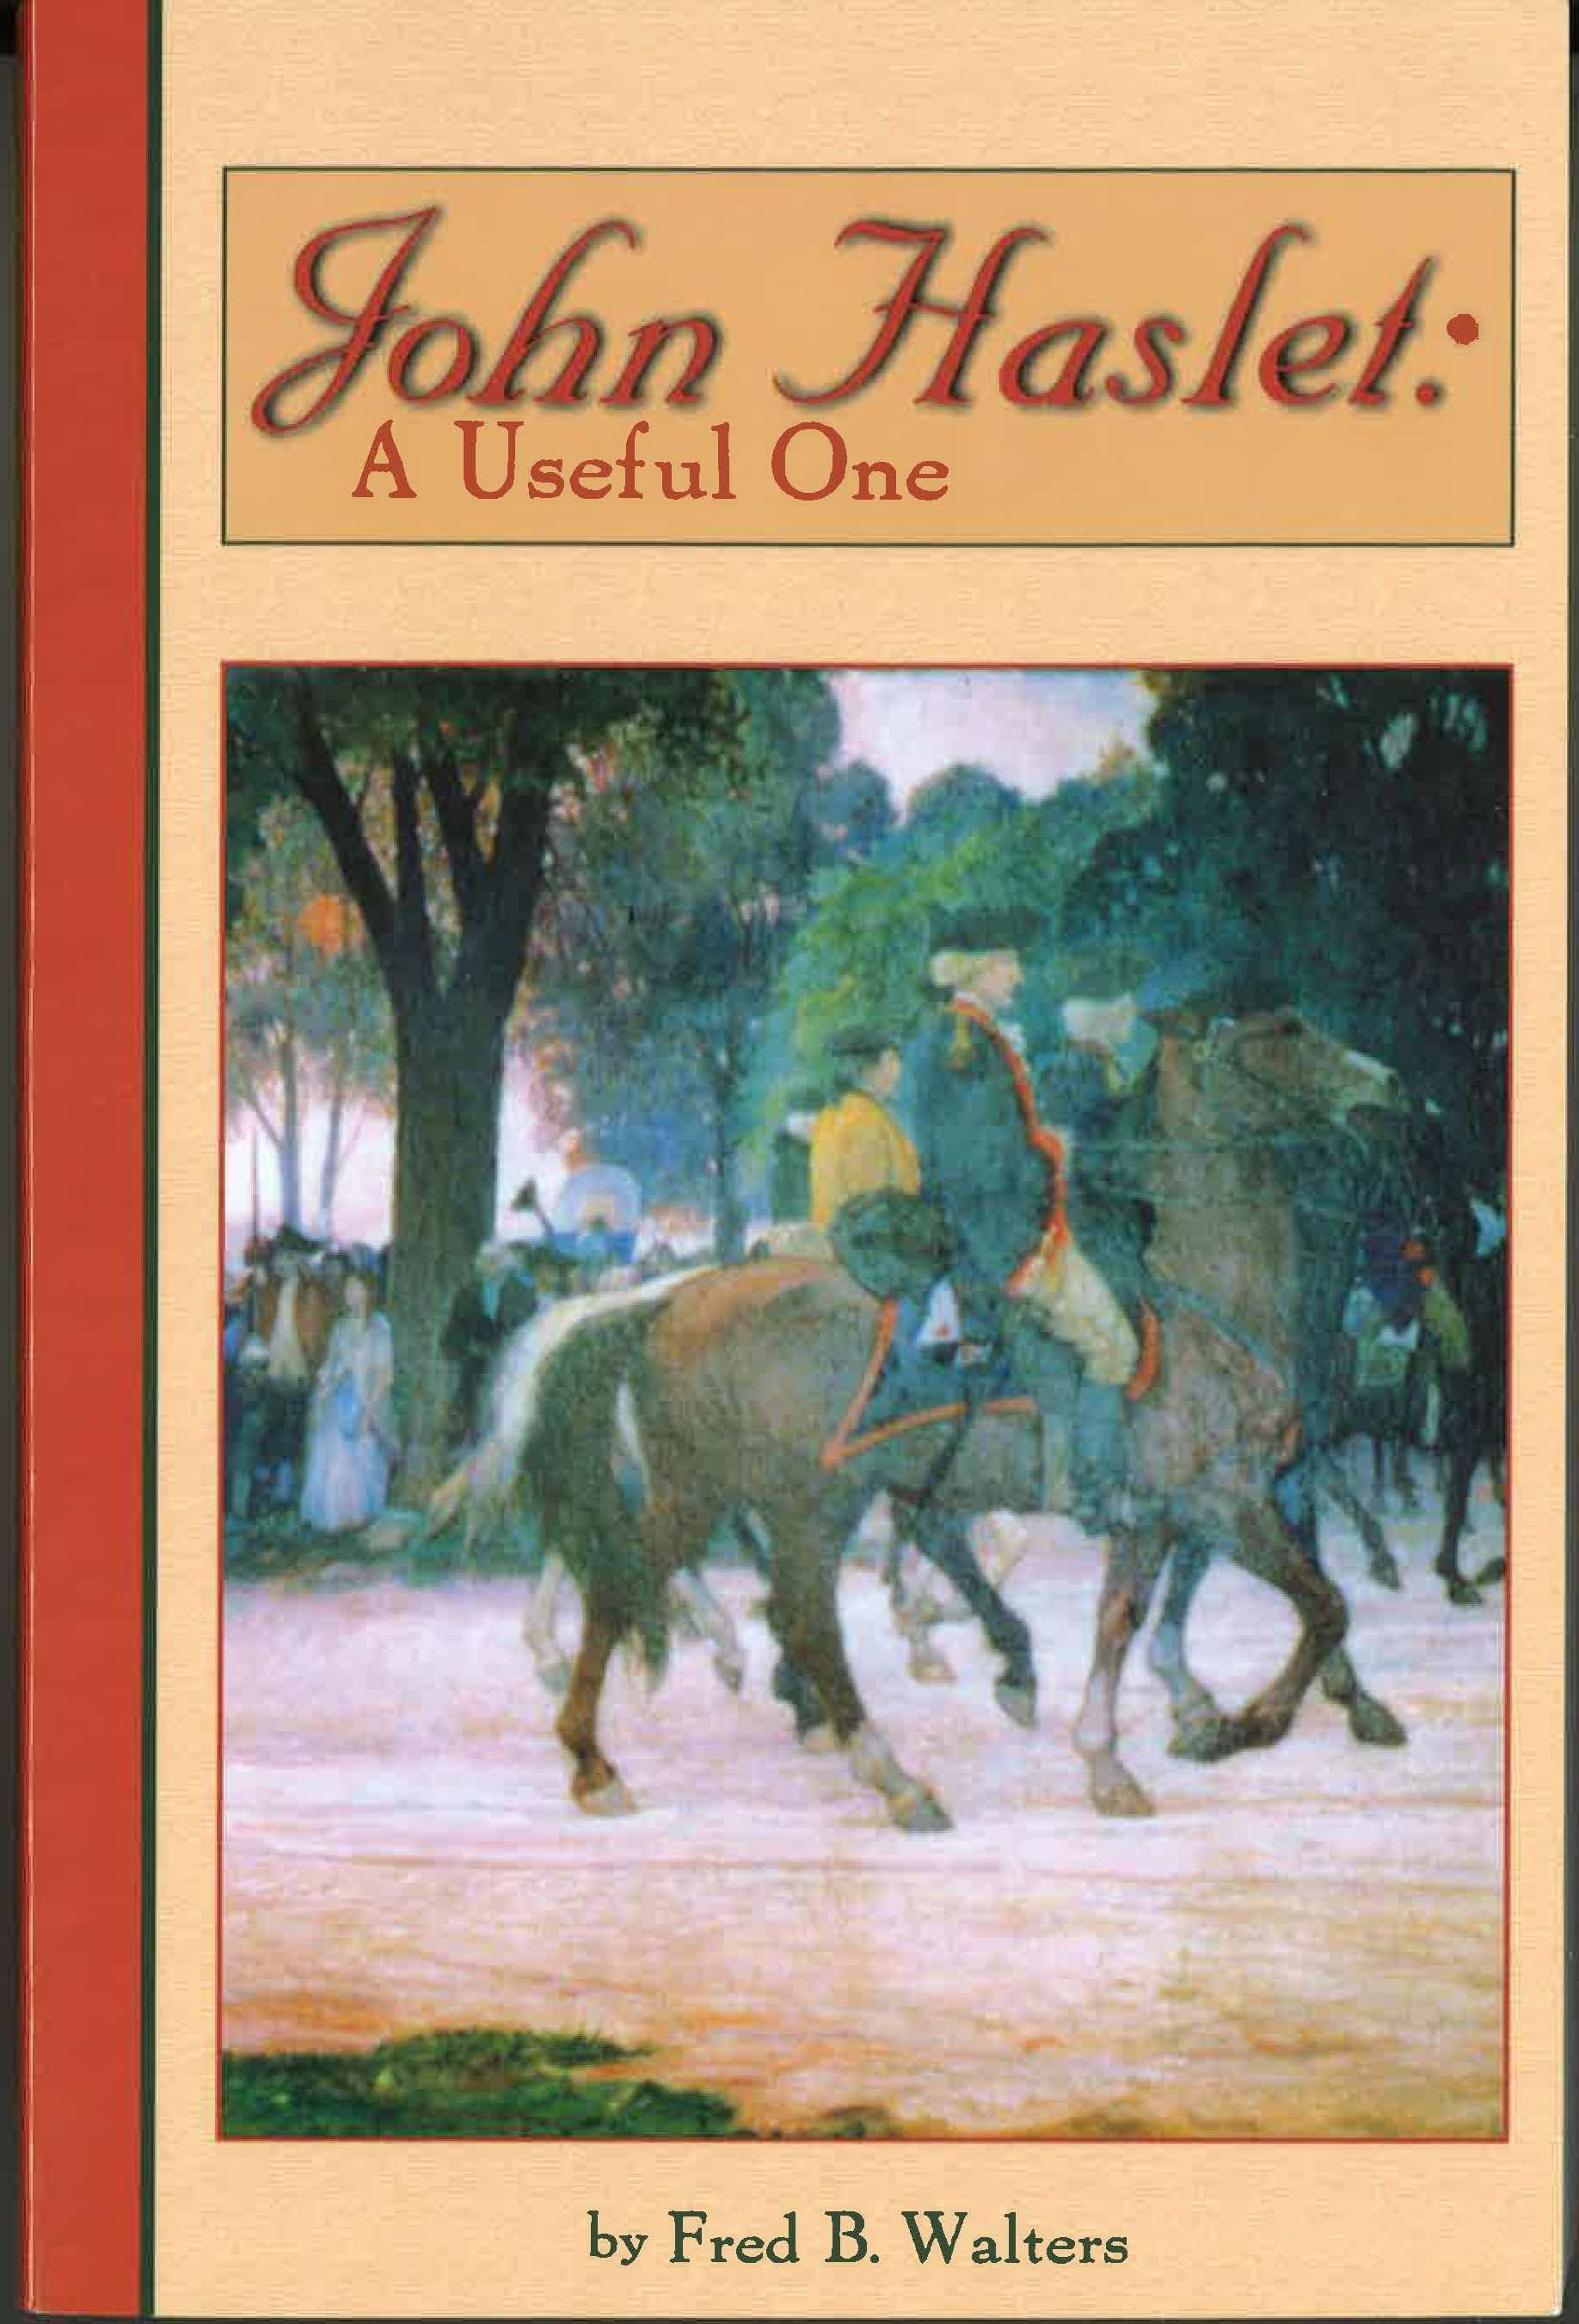 John Haslet: The Useful One, by Fred Walters, 2005, 418 pp., PAPERBACK. Prices reflect the cost of the book PLUS S&H fee of $5.00.